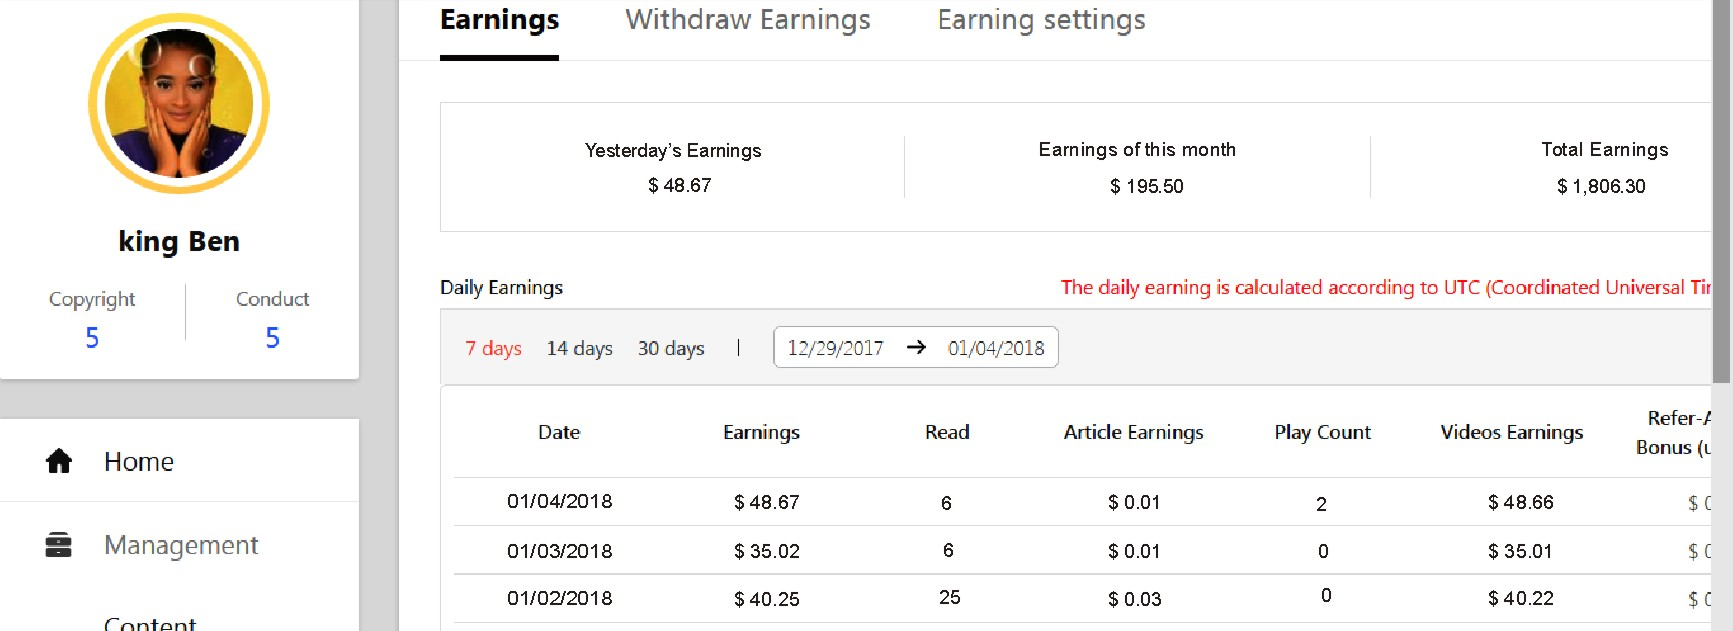 i will teach you how to make atleast $40 everyday, doing videos upload for just 20 minutes daily